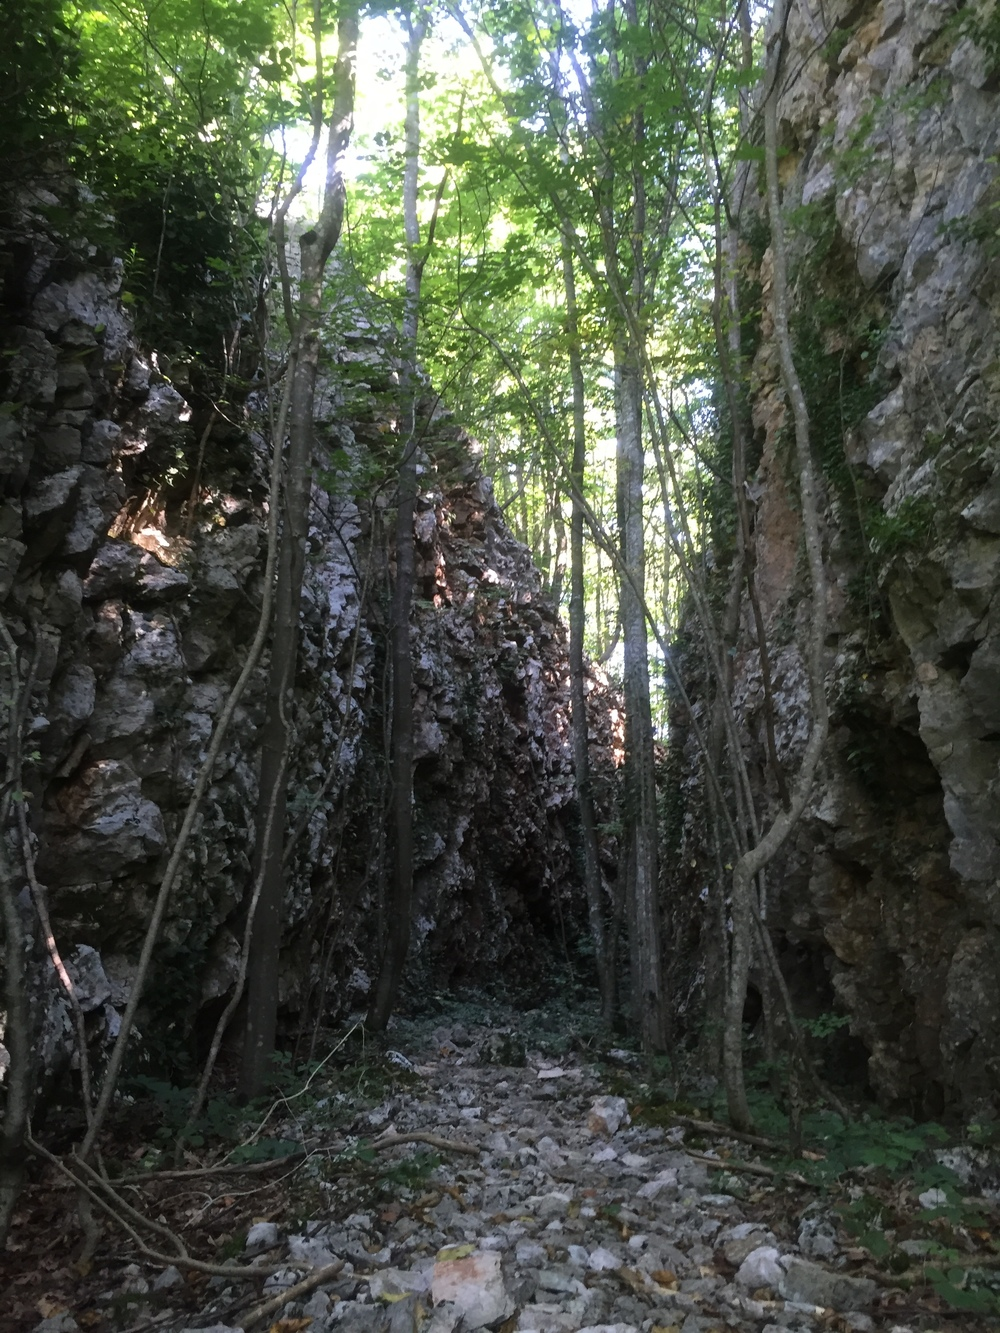 Rock walls along the trail.